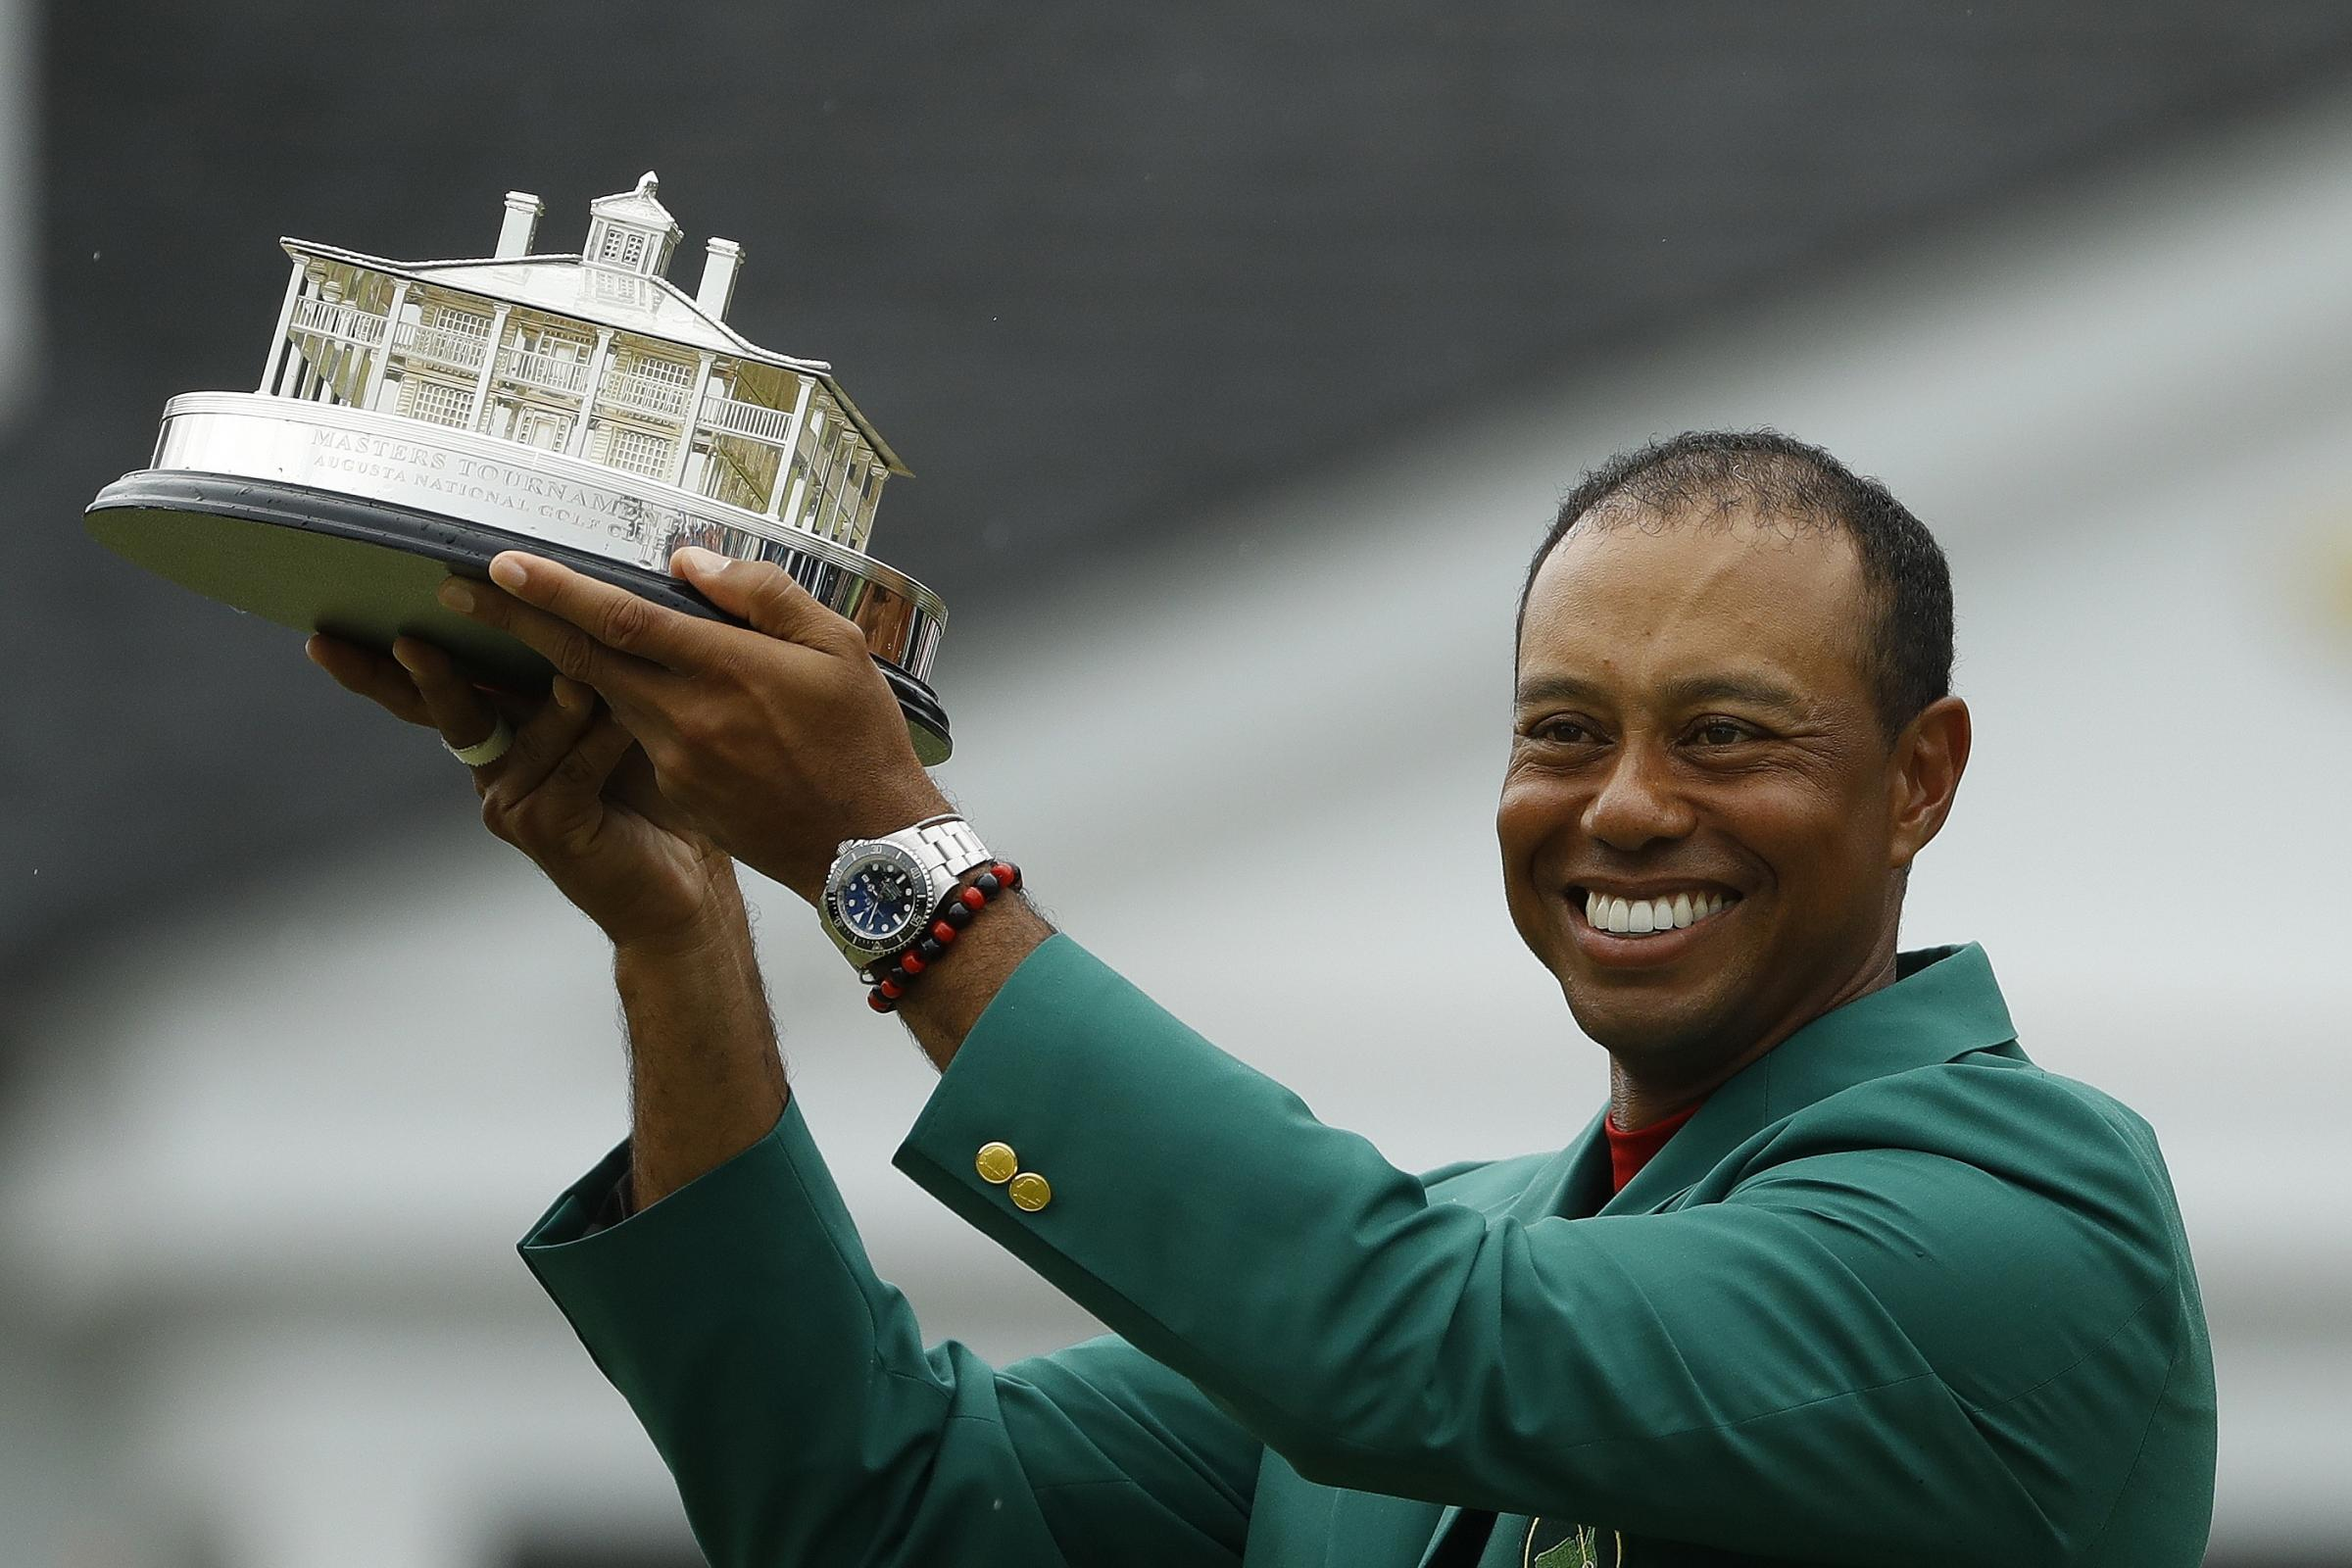 Tiger Woods sealed a thrilling Masters victory to complete one of sport's greatest comebacks